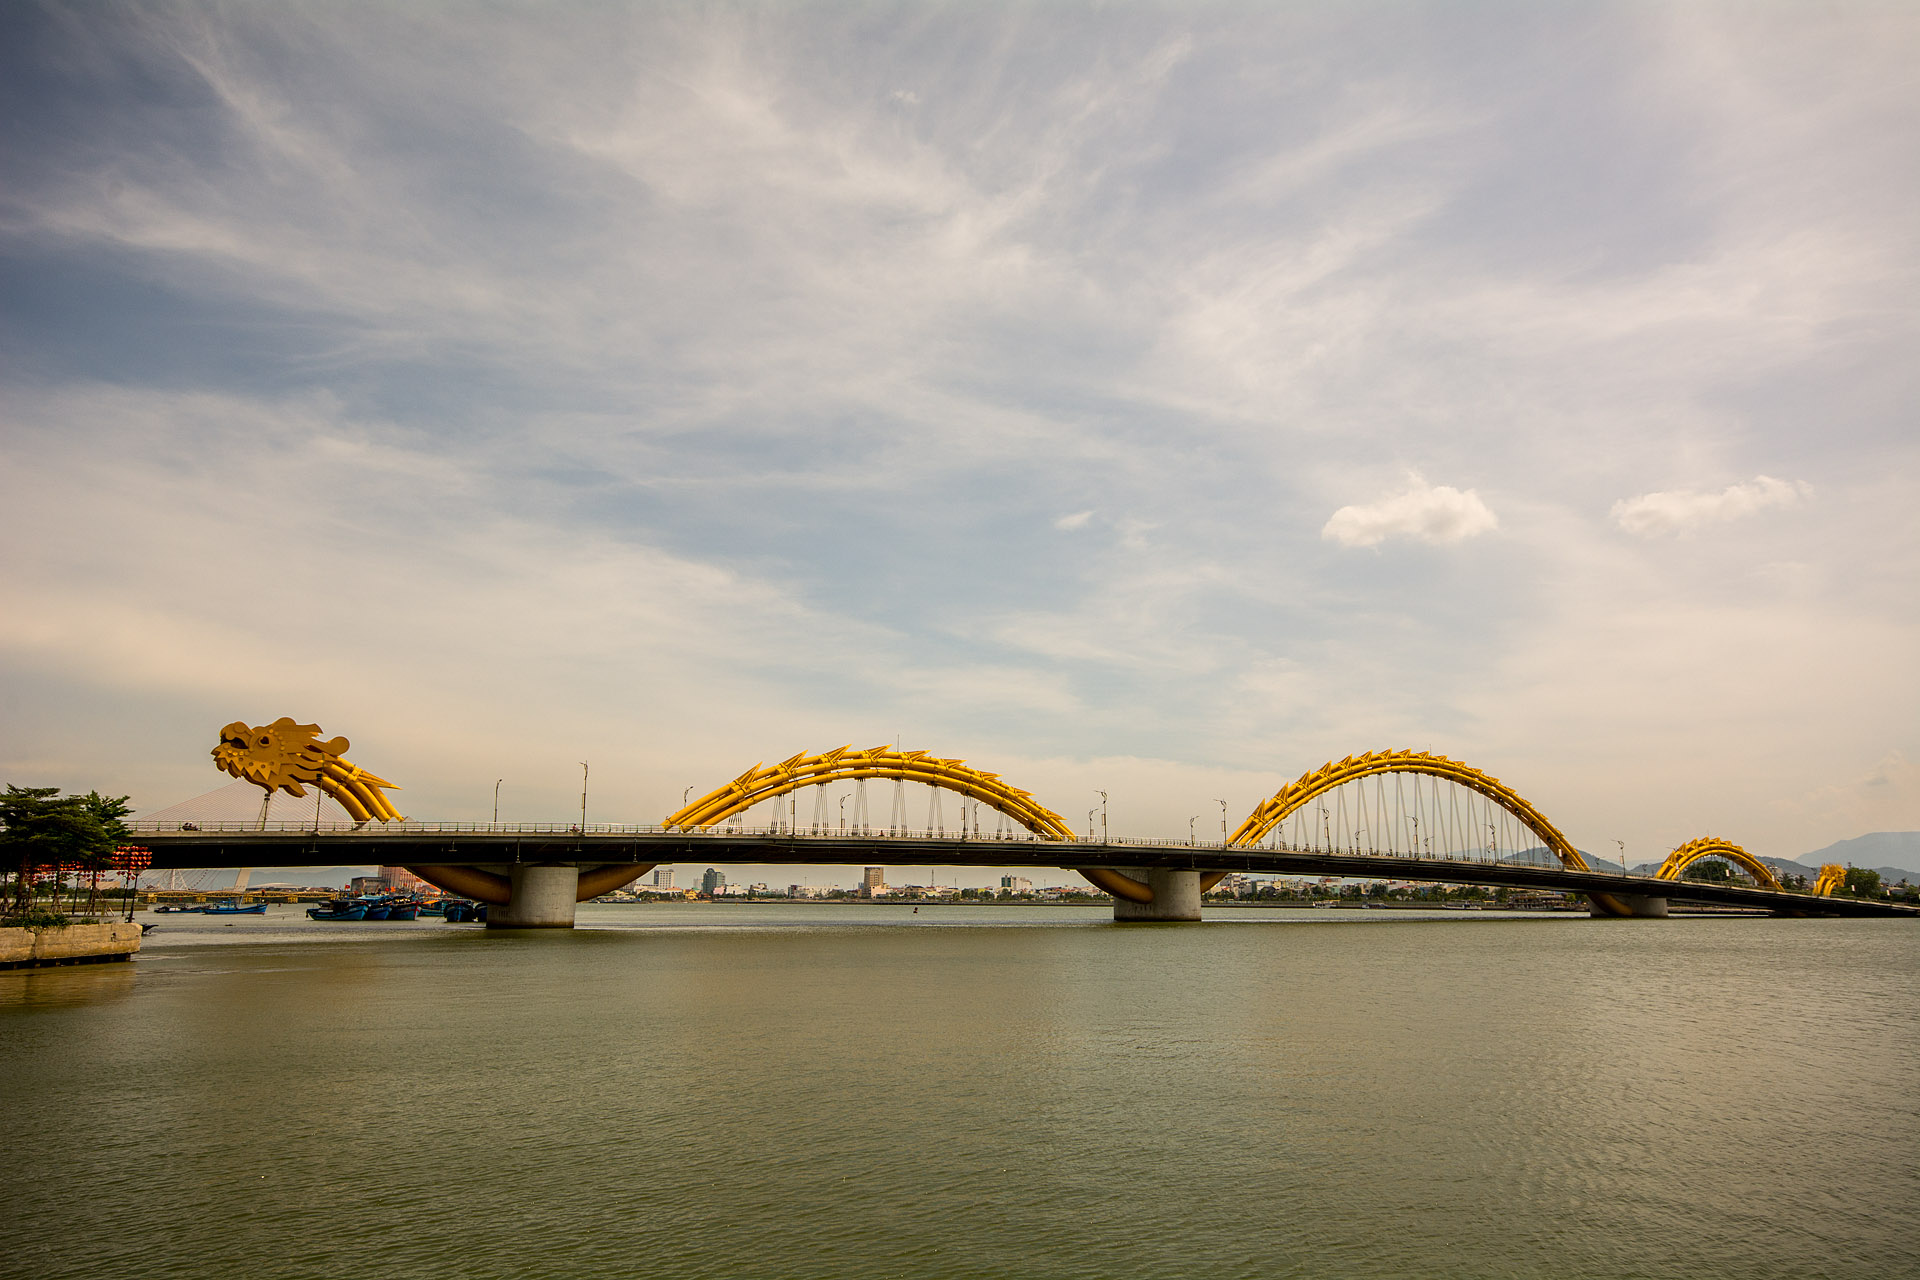 Dragon Bridge (Cau Rong)